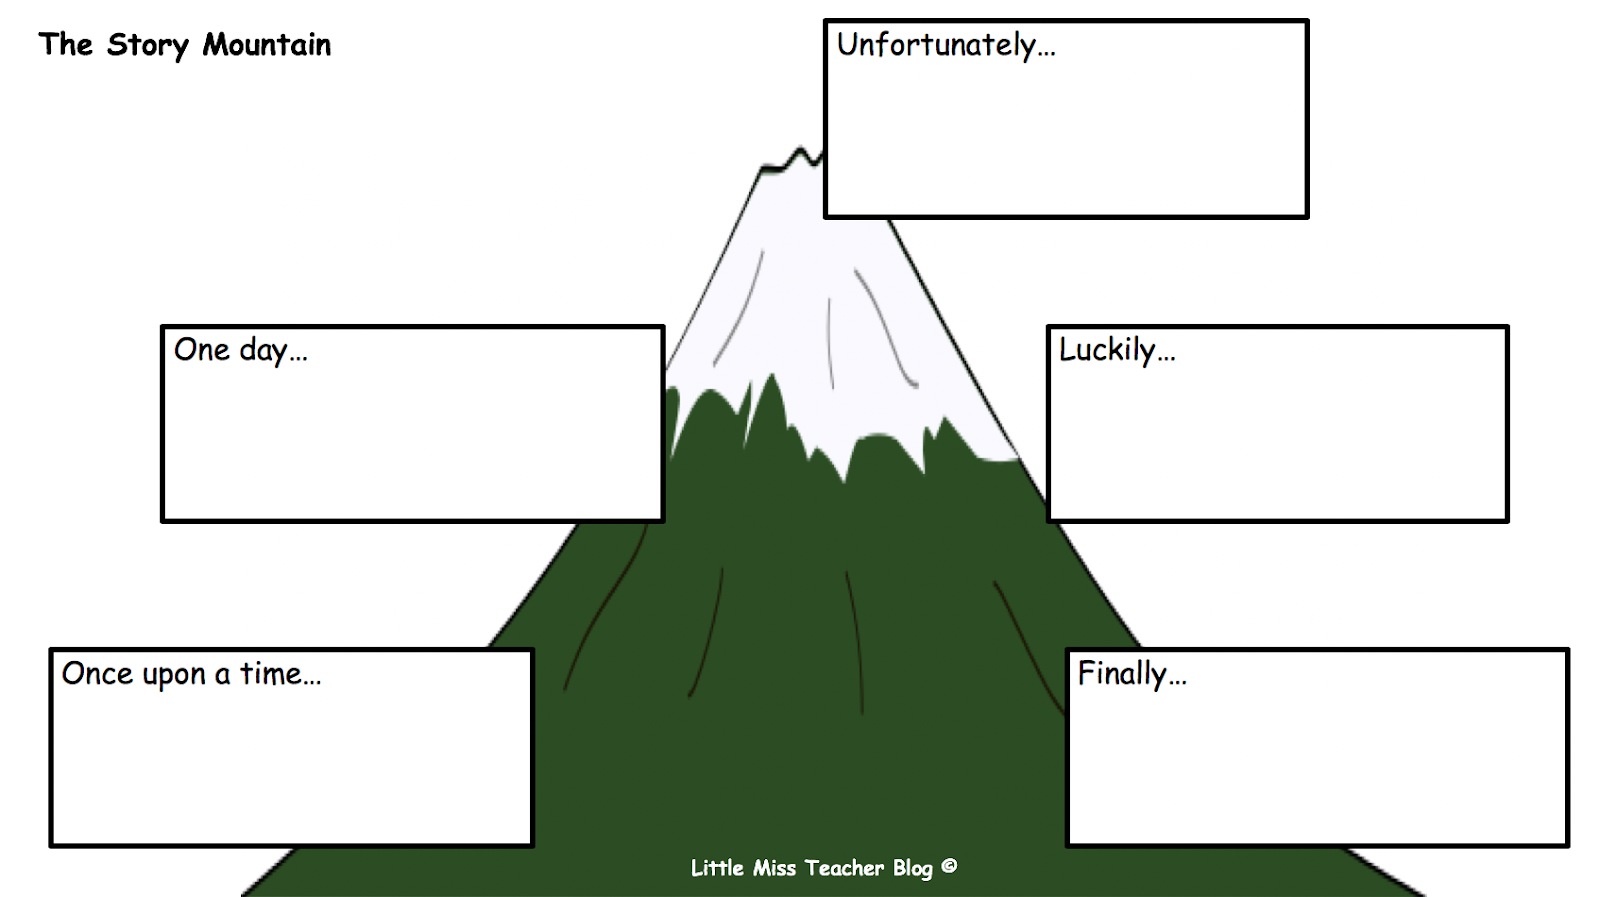 The Story Mountain